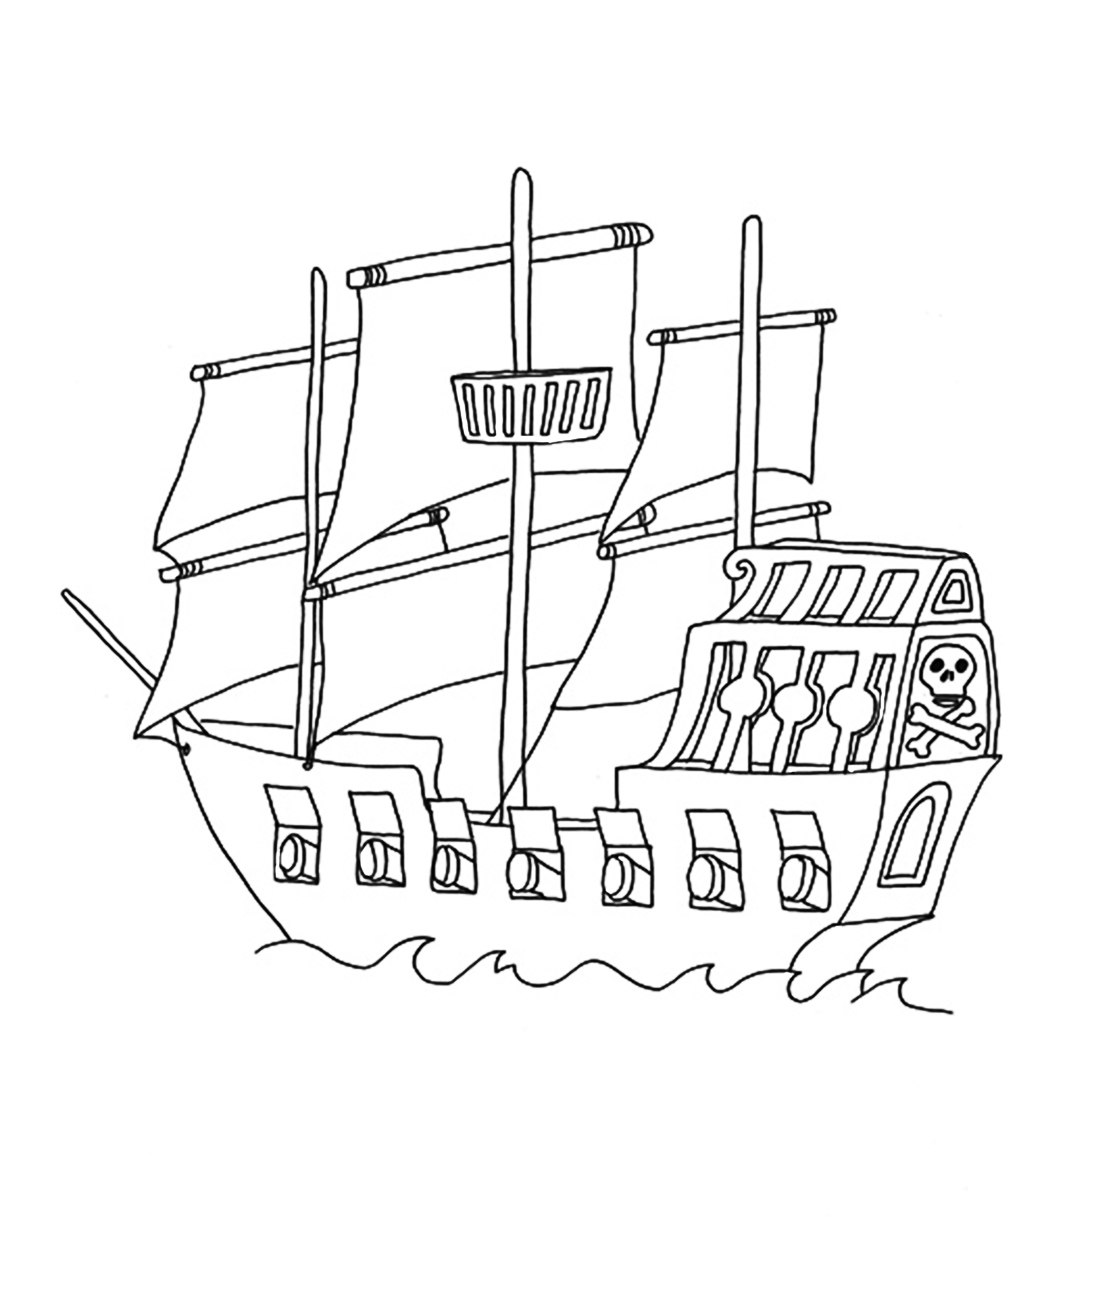 pirate ships coloring sheet 150 dpi pirate ship coloring pages